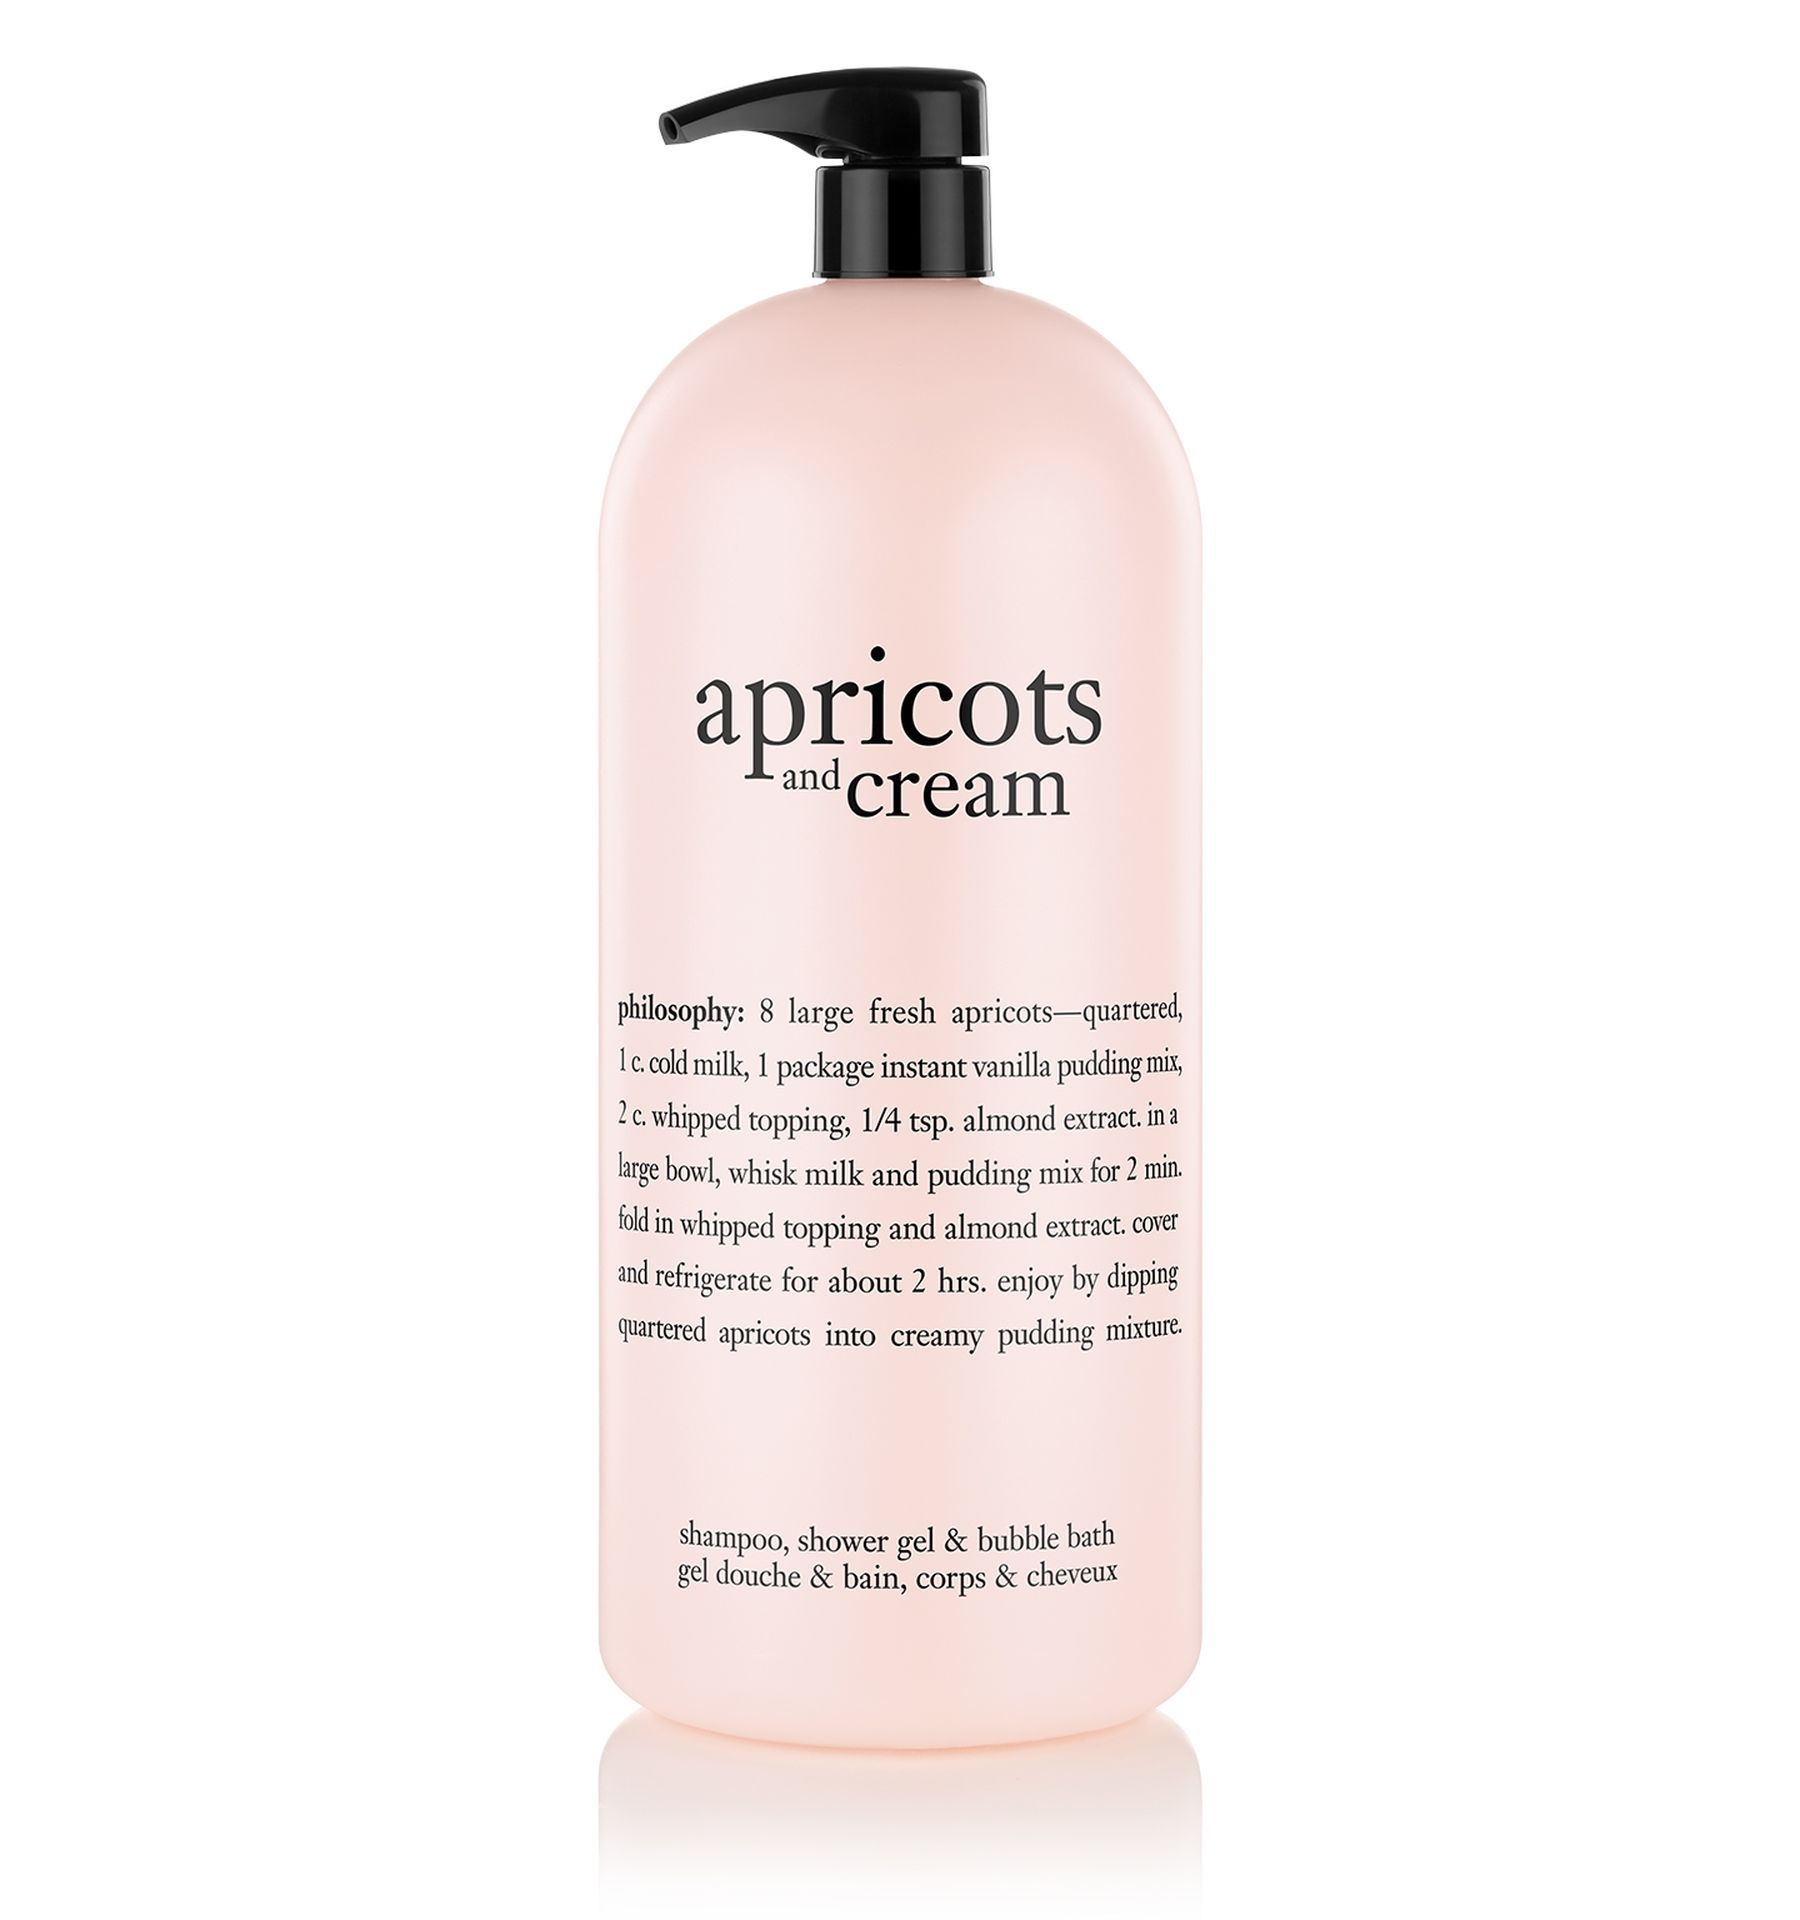 Apricots And Cream Shampoo Shower Gel Bubble Bath Philosophy New Shower Gel Bath And Body Care Bath And Body